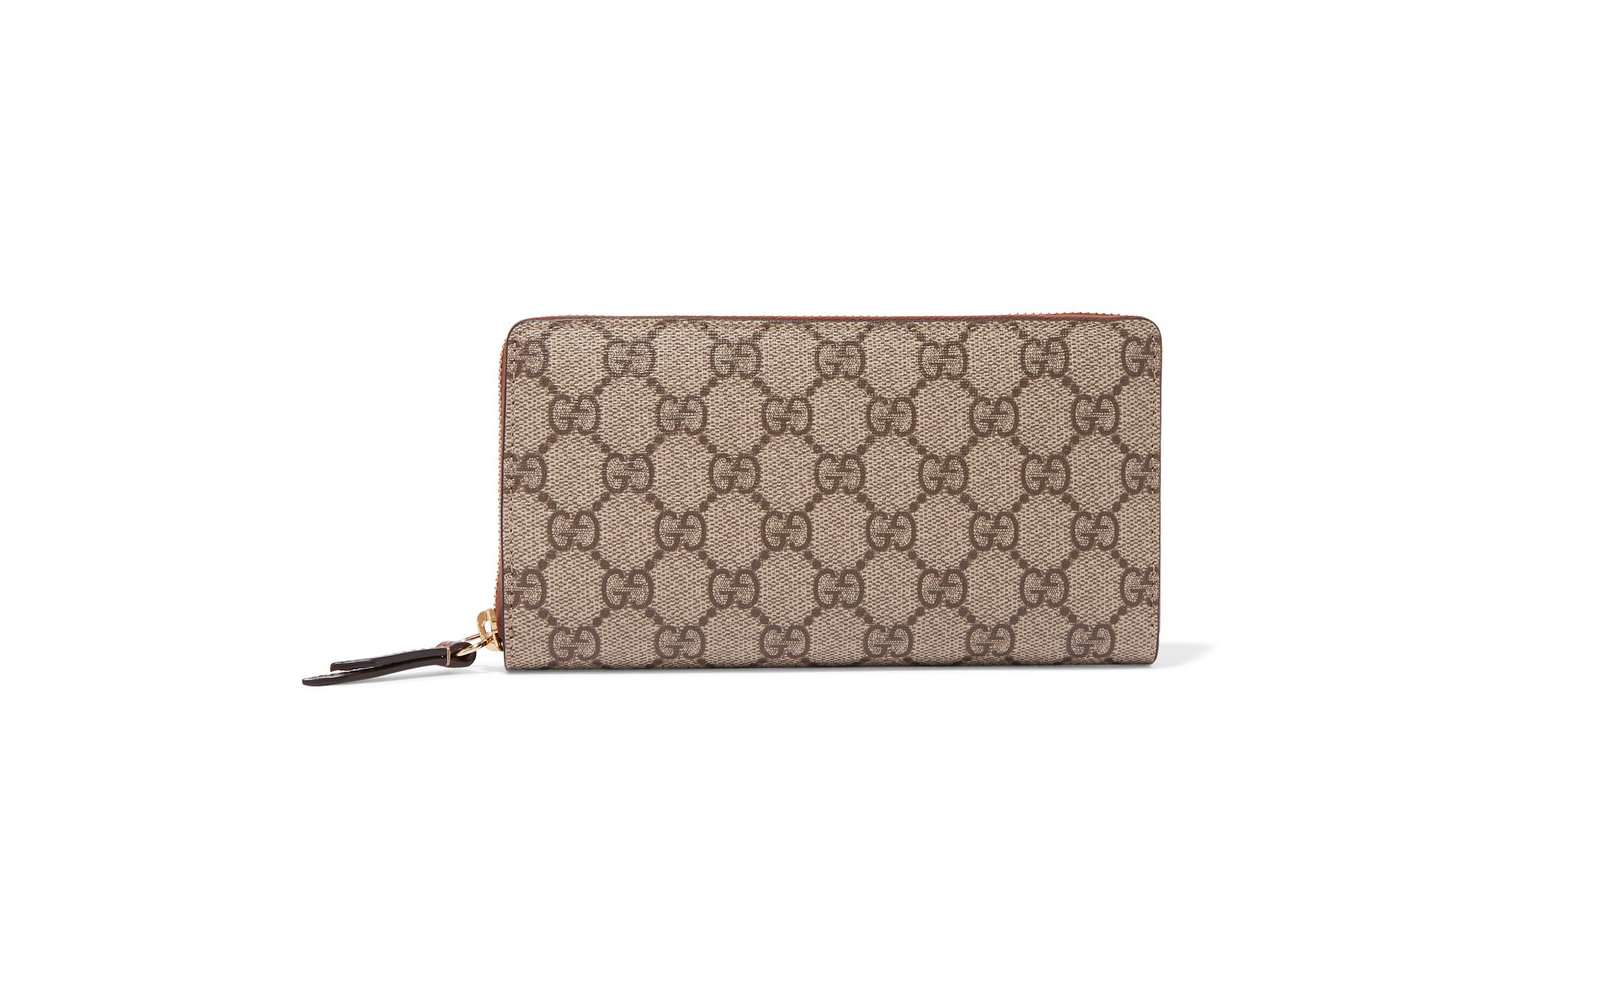 Gucci, Coated Canvas Continental Wallet